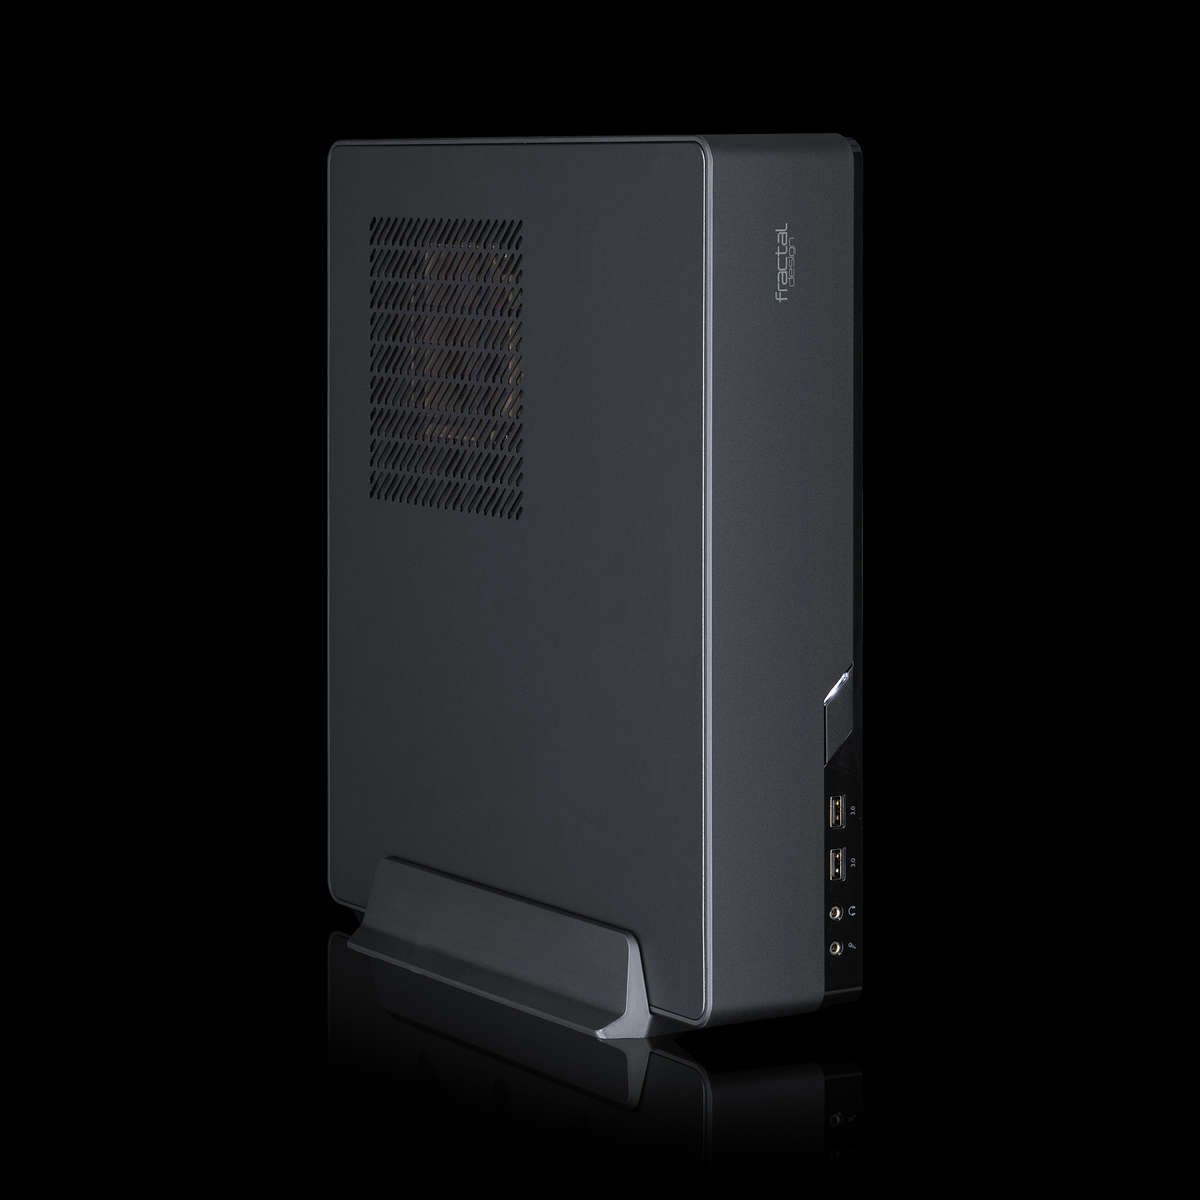 Chillblast Fraction Advanced Gaming PC